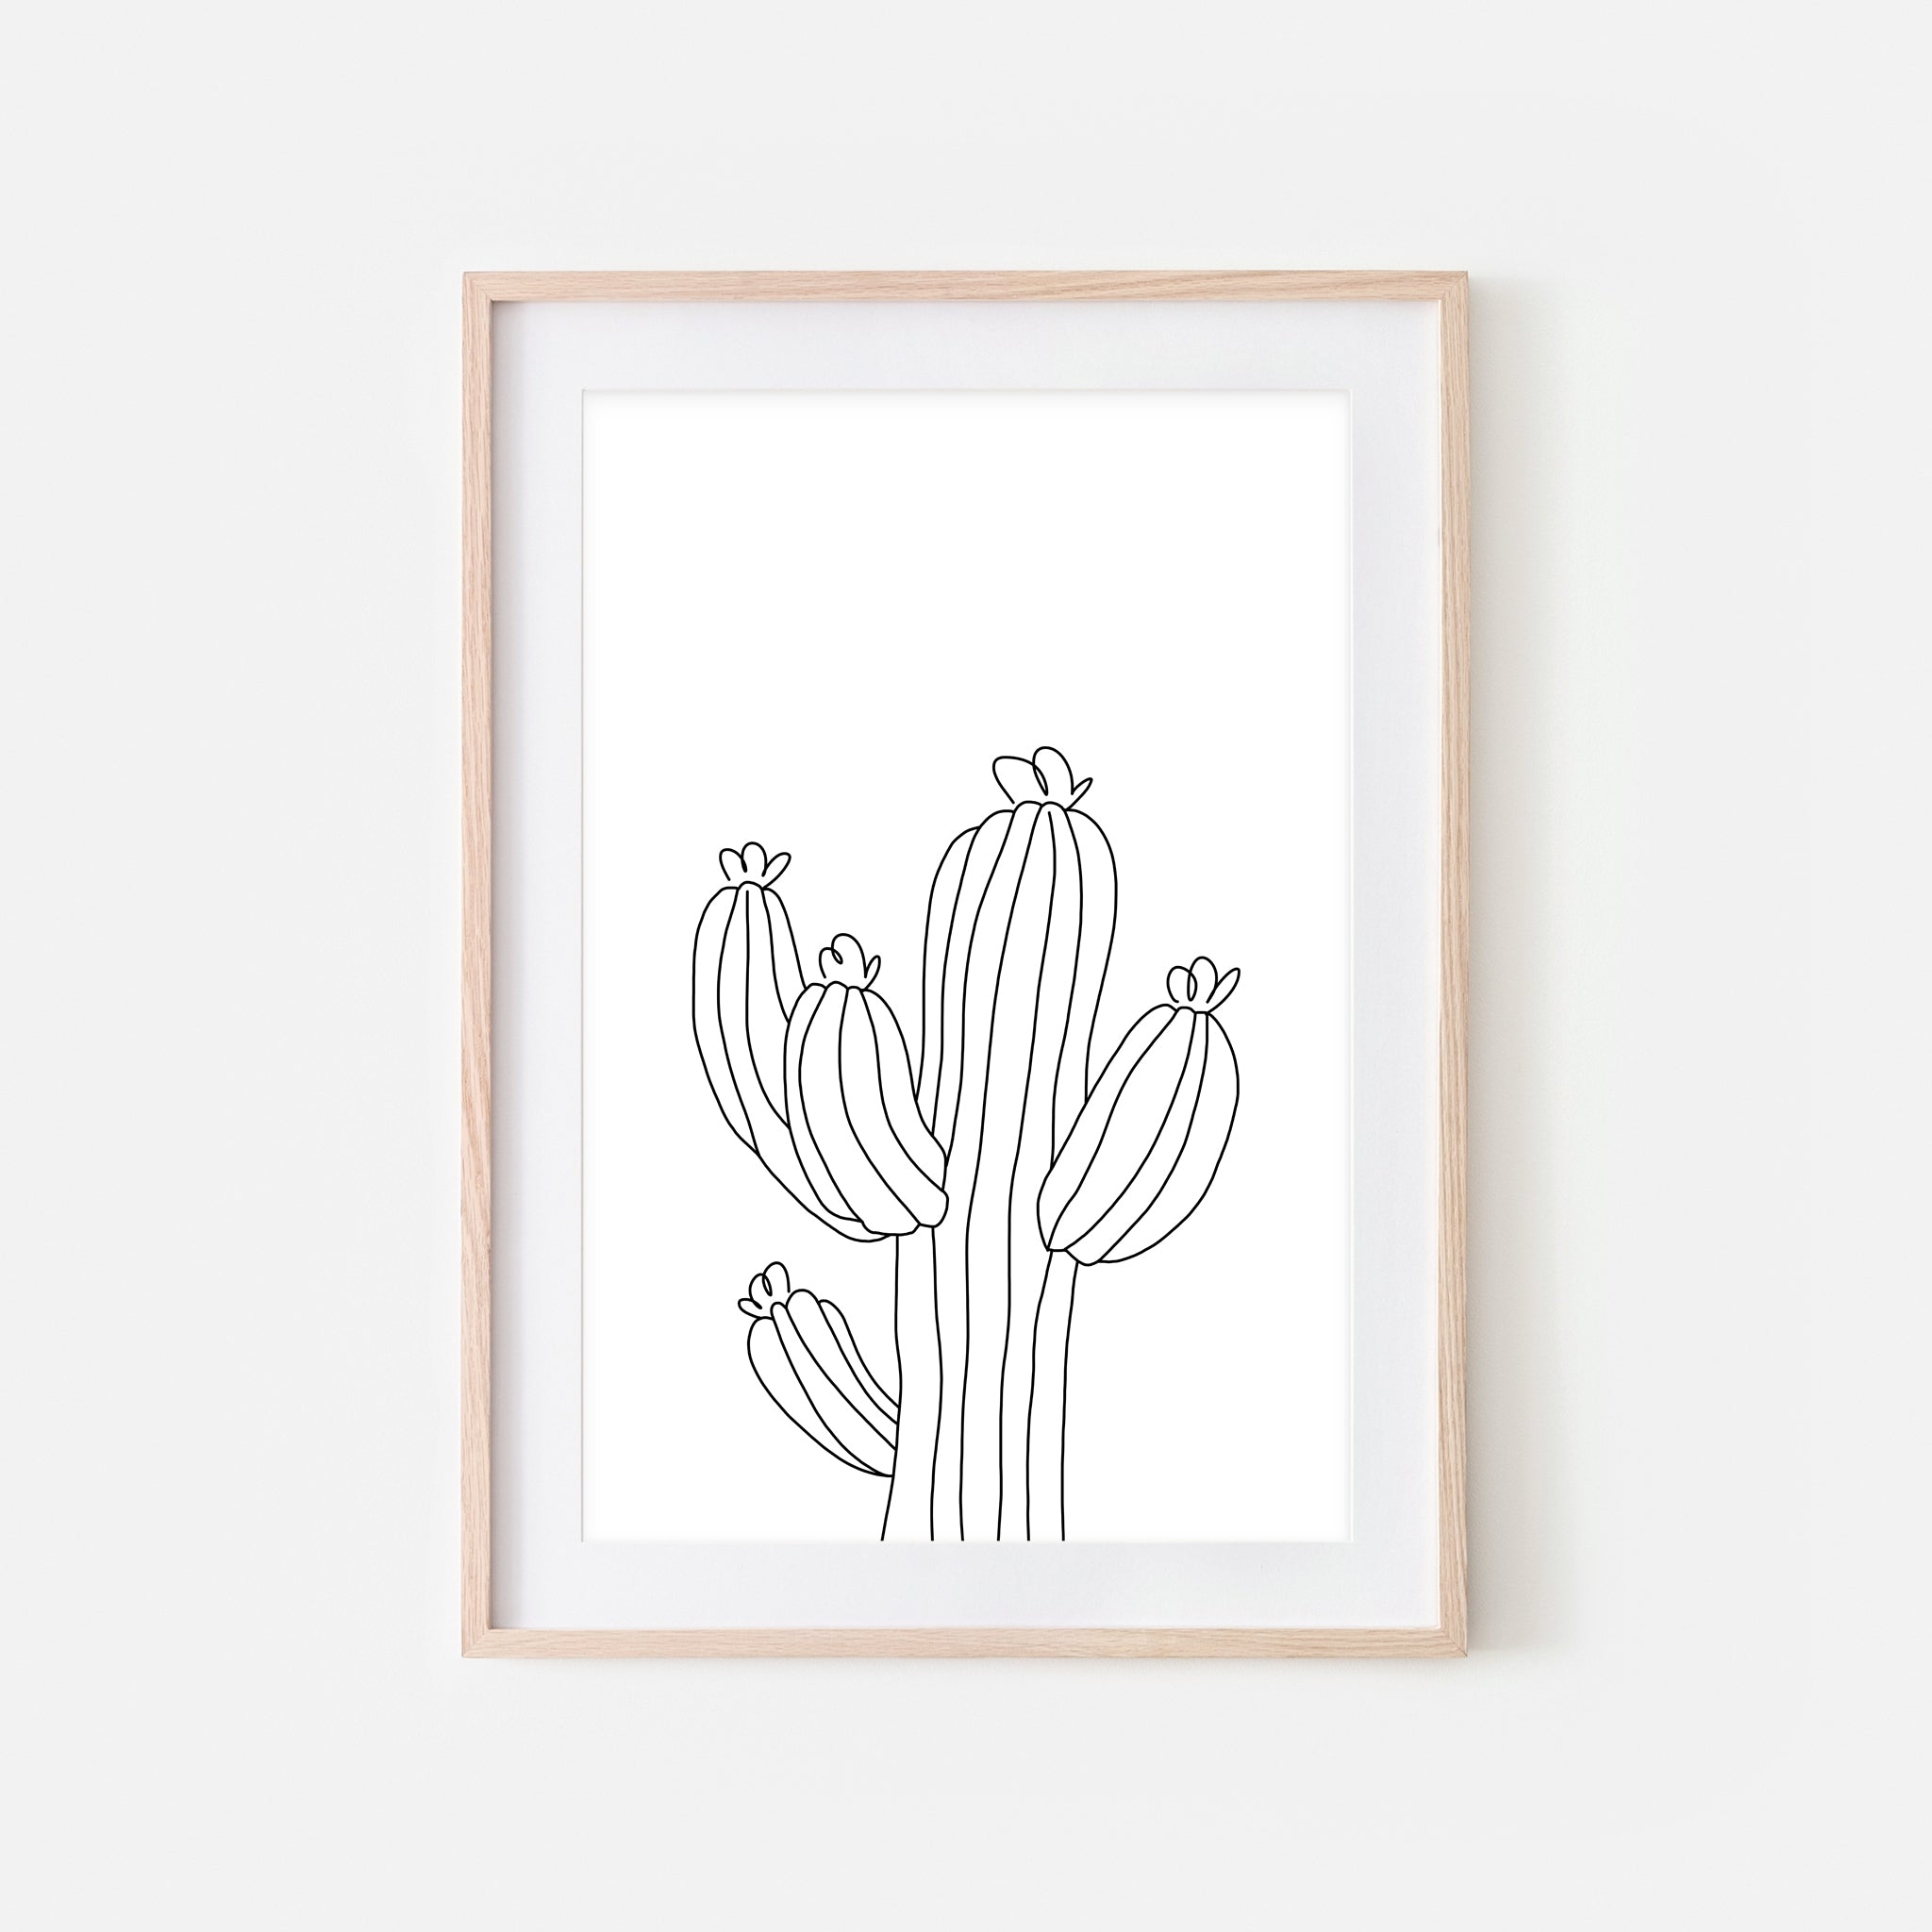 Botanical No. 16 Wall Art - Minimalist Cactus Line Drawing - Black and White Print, Poster or Printable Download